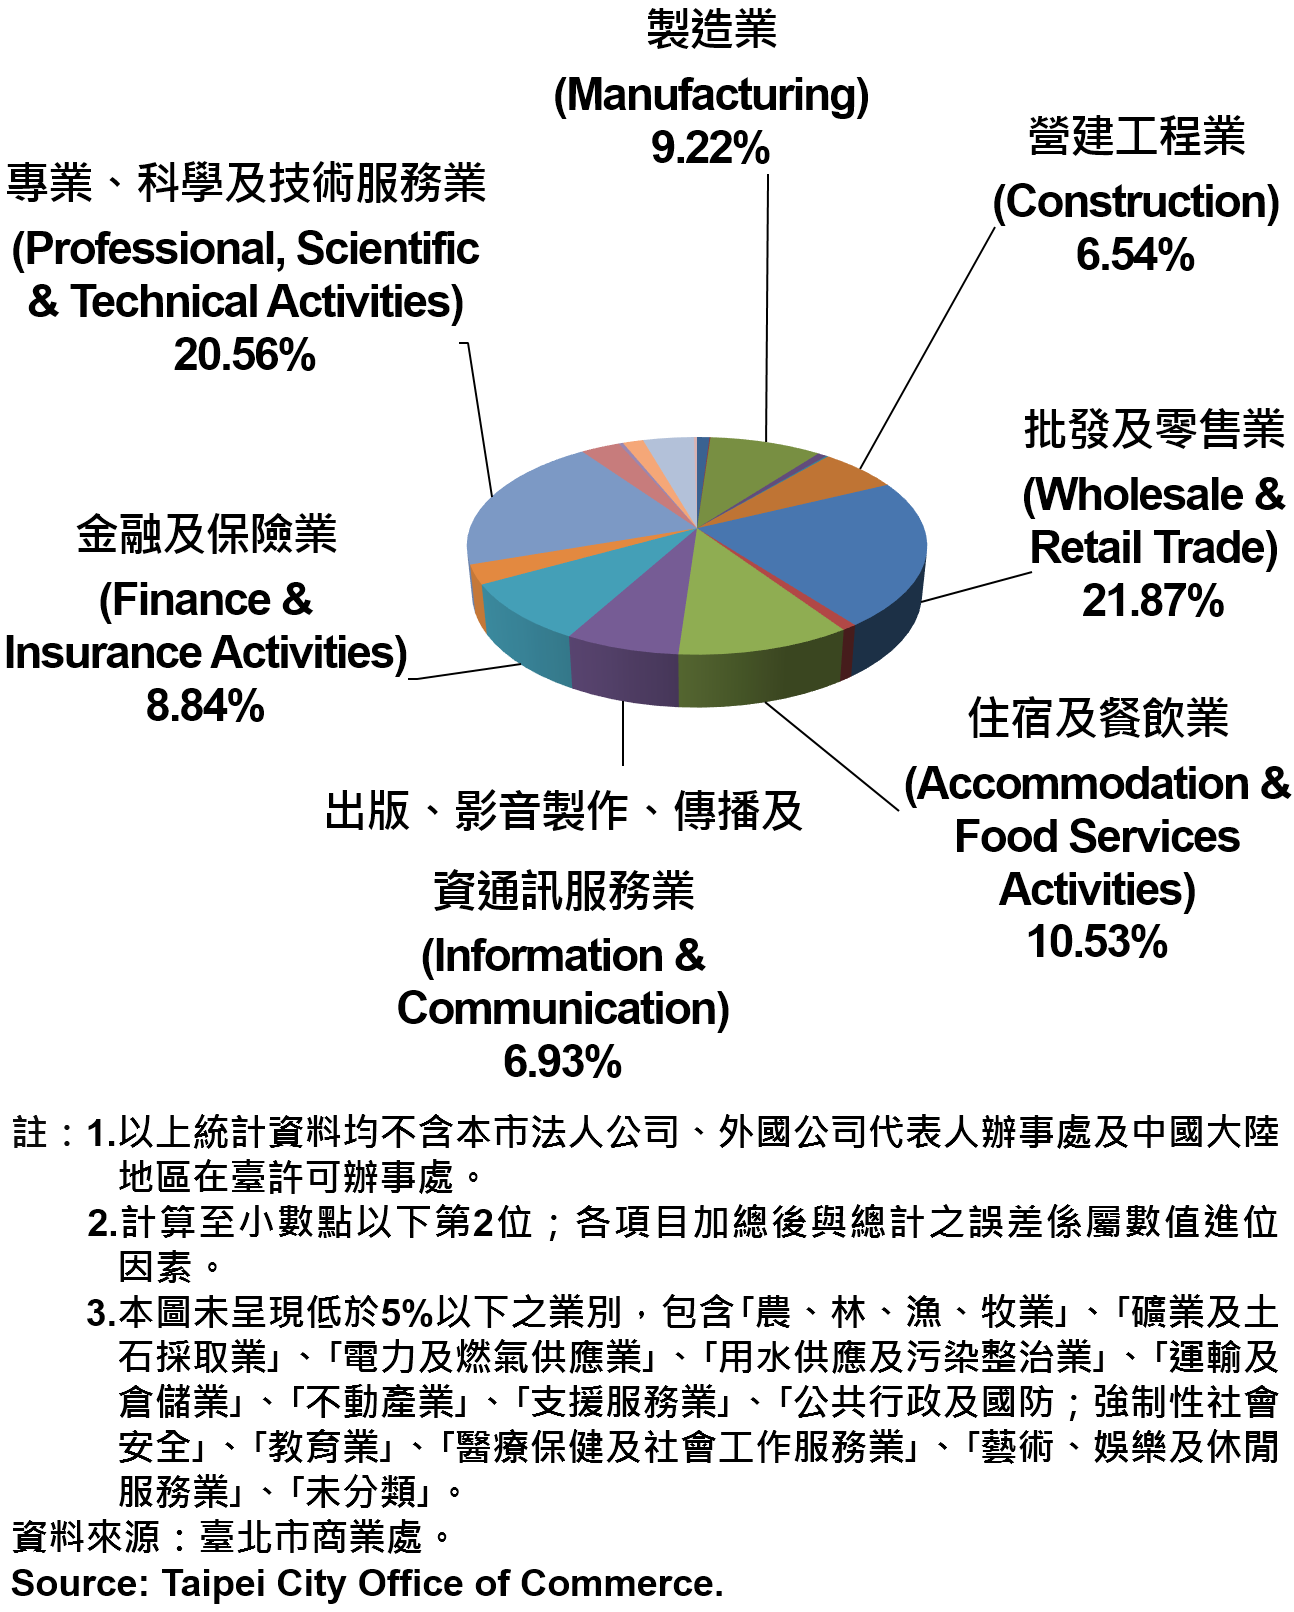 臺北市新創公司行號之業別分布情形—依新增家數—2019 Newly Registered Companies in Taipei City by Industry- Number of Incorporation—2019